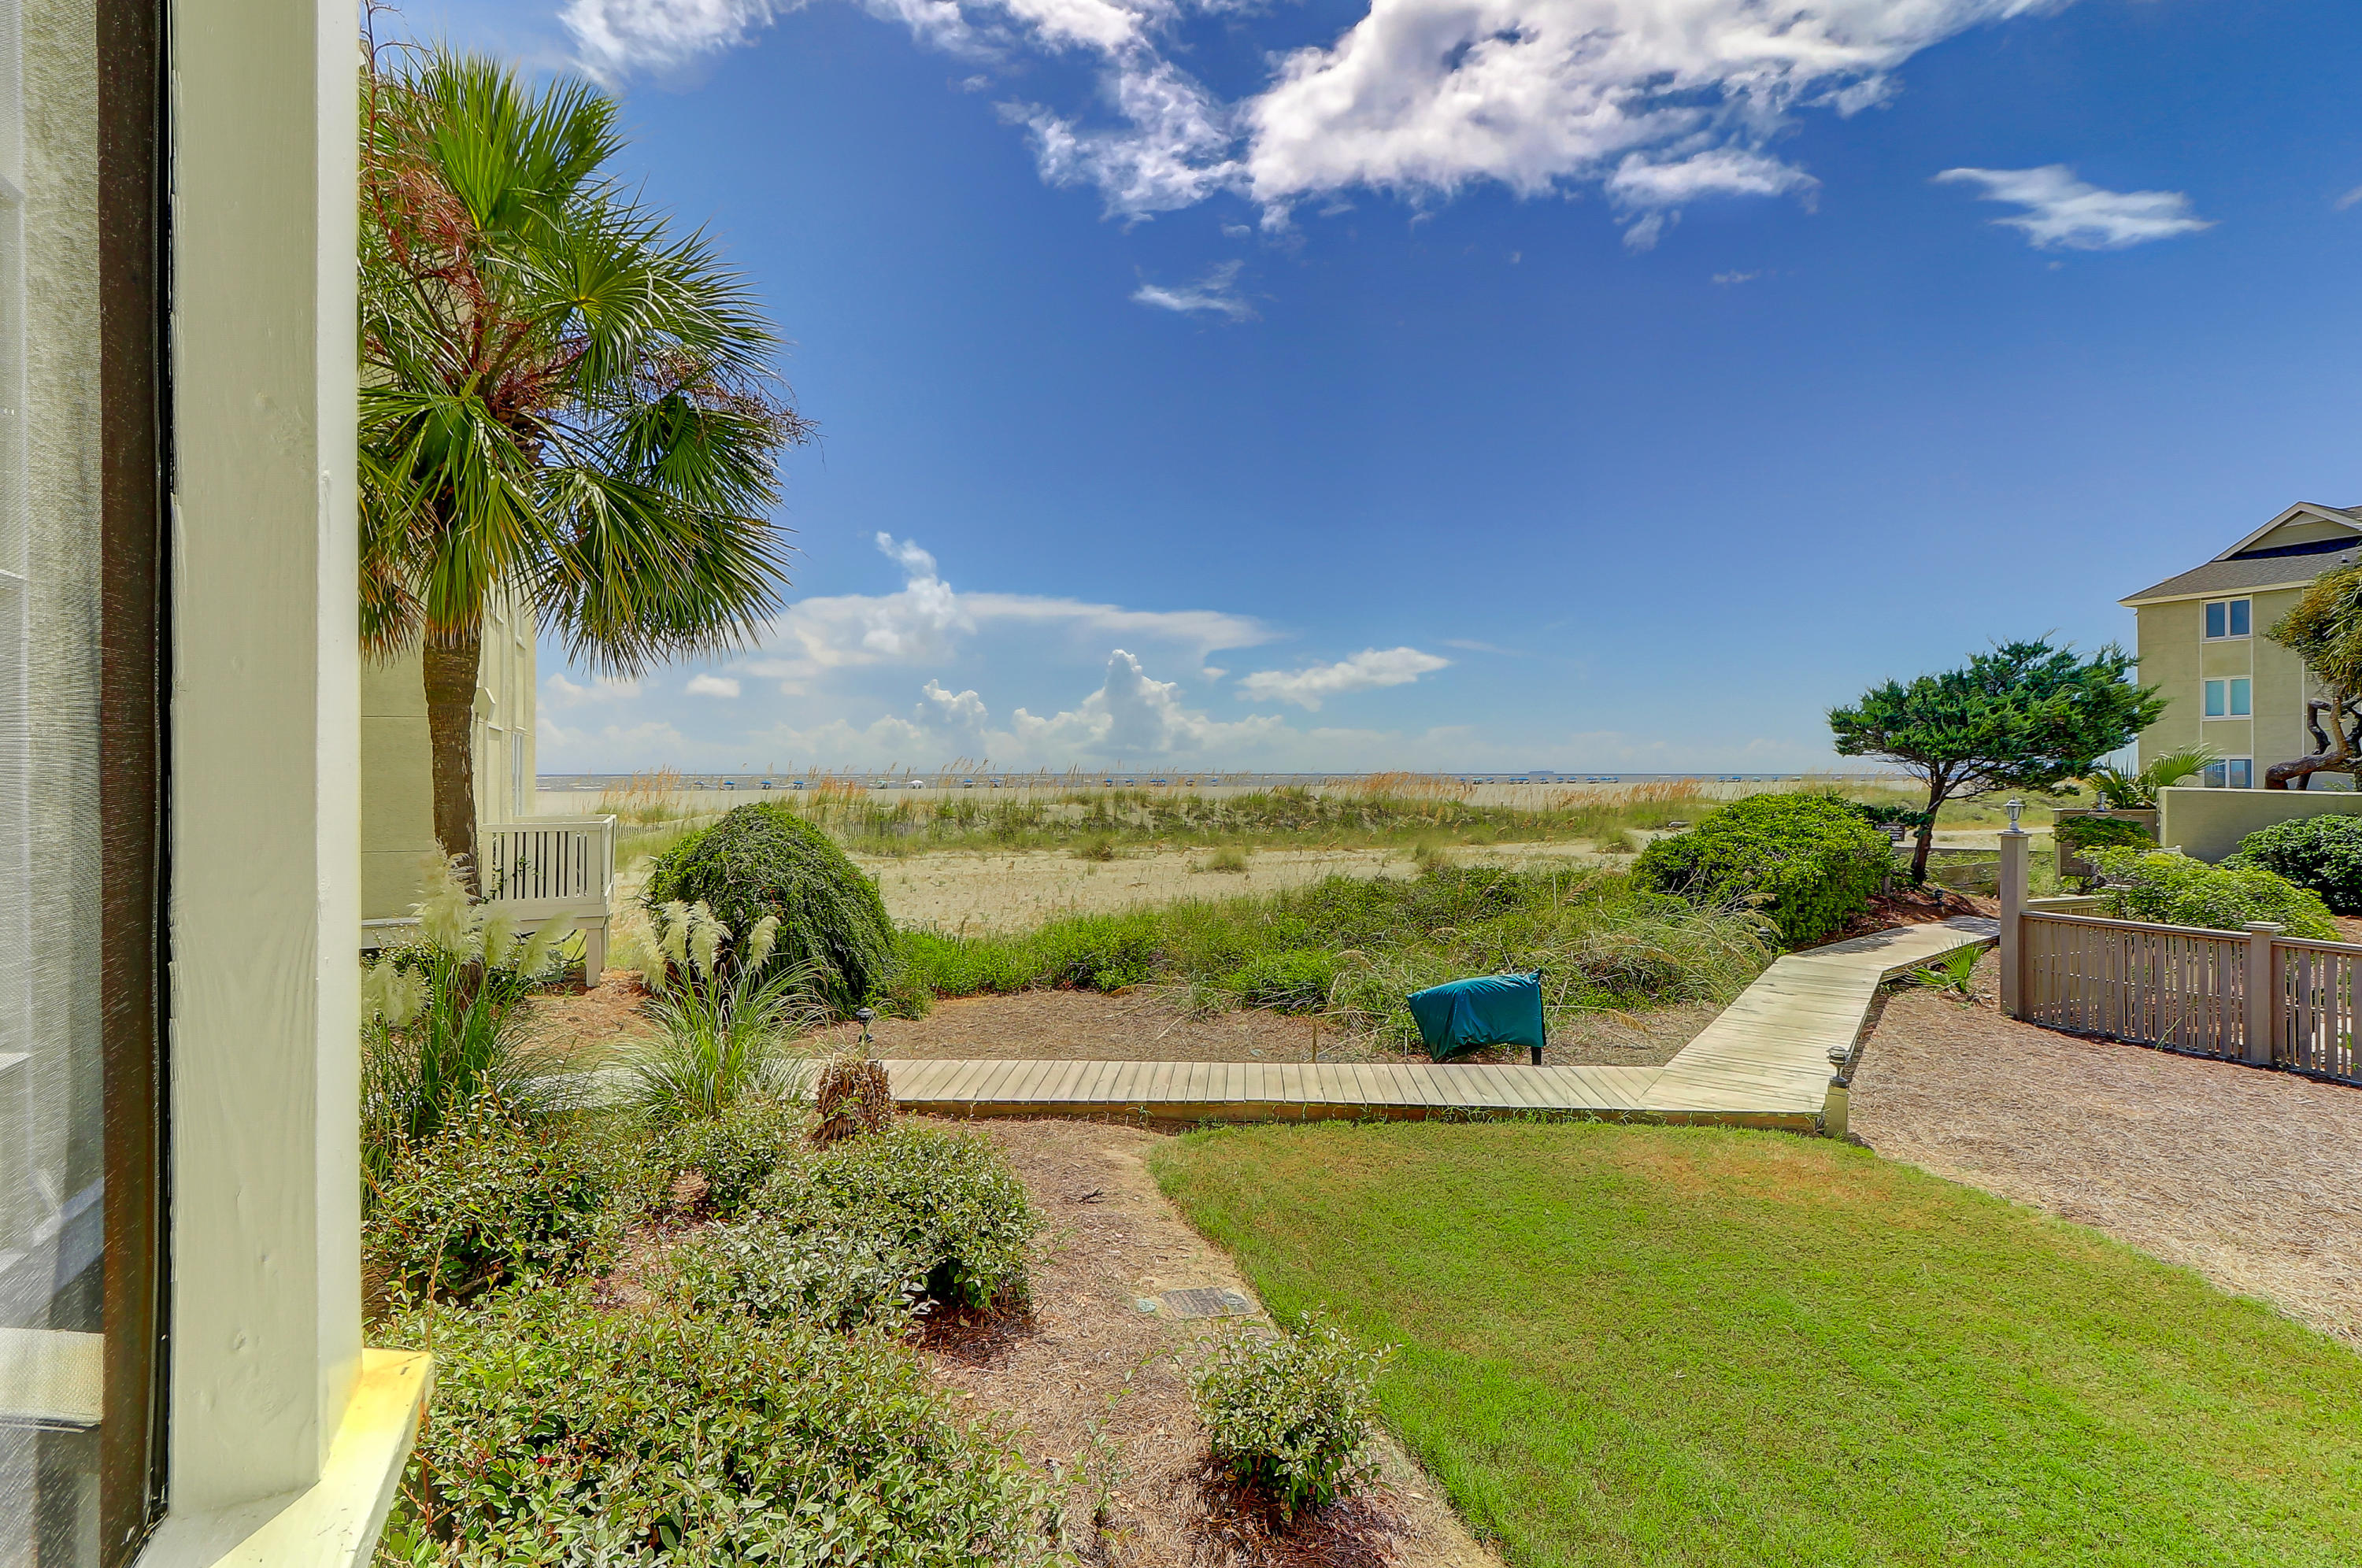 Wild Dunes Homes For Sale - 104 Port O'Call, Isle of Palms, SC - 21